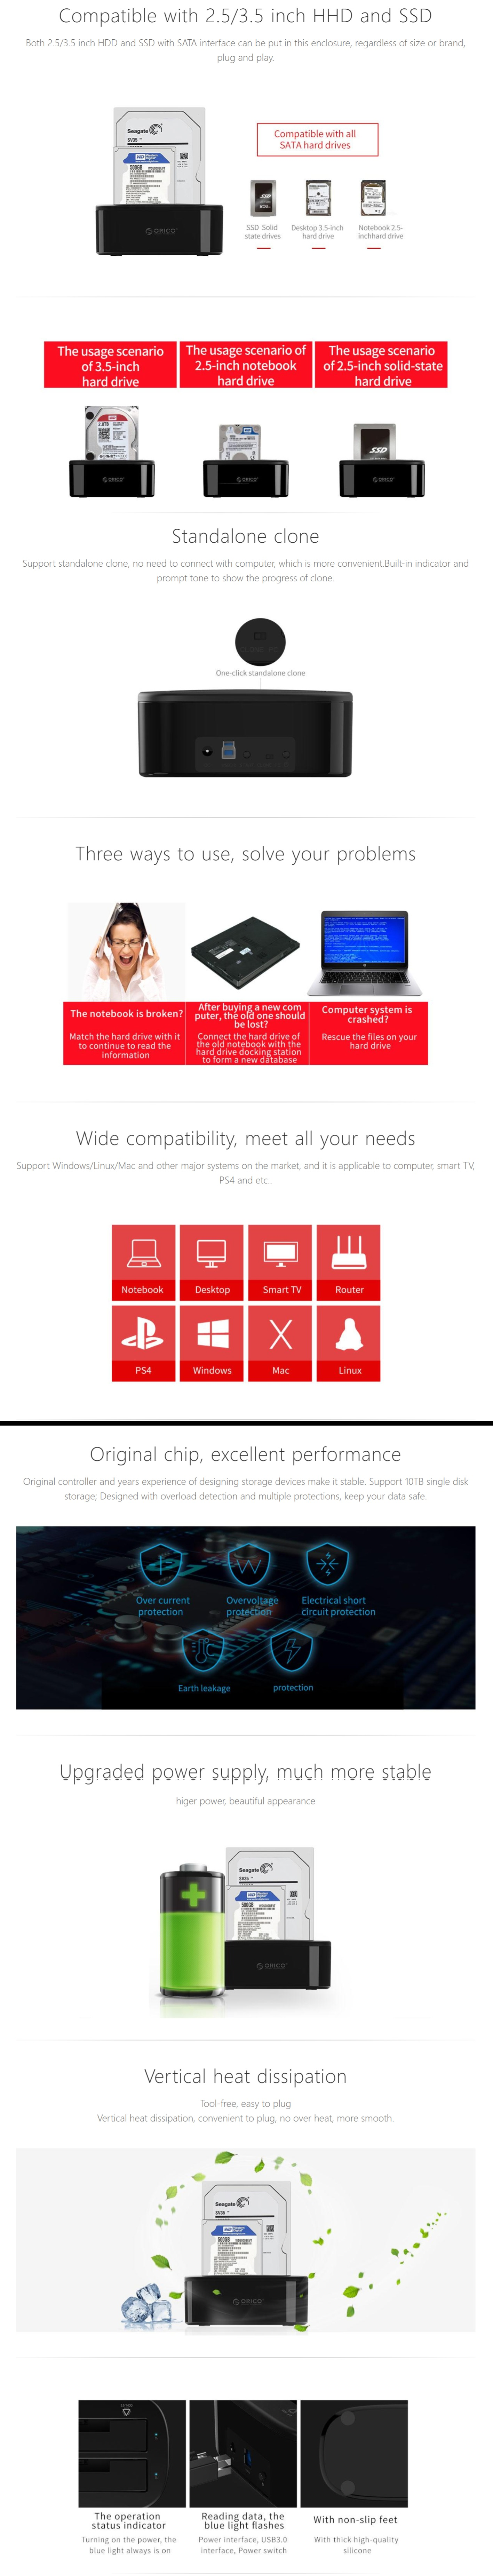 A large marketing image providing additional information about the product ORICO 2.5/3.5in USB3.0 1 to 1 Clone Dual-bay HDD and SSD Hard Drive Dock - Additional alt info not provided